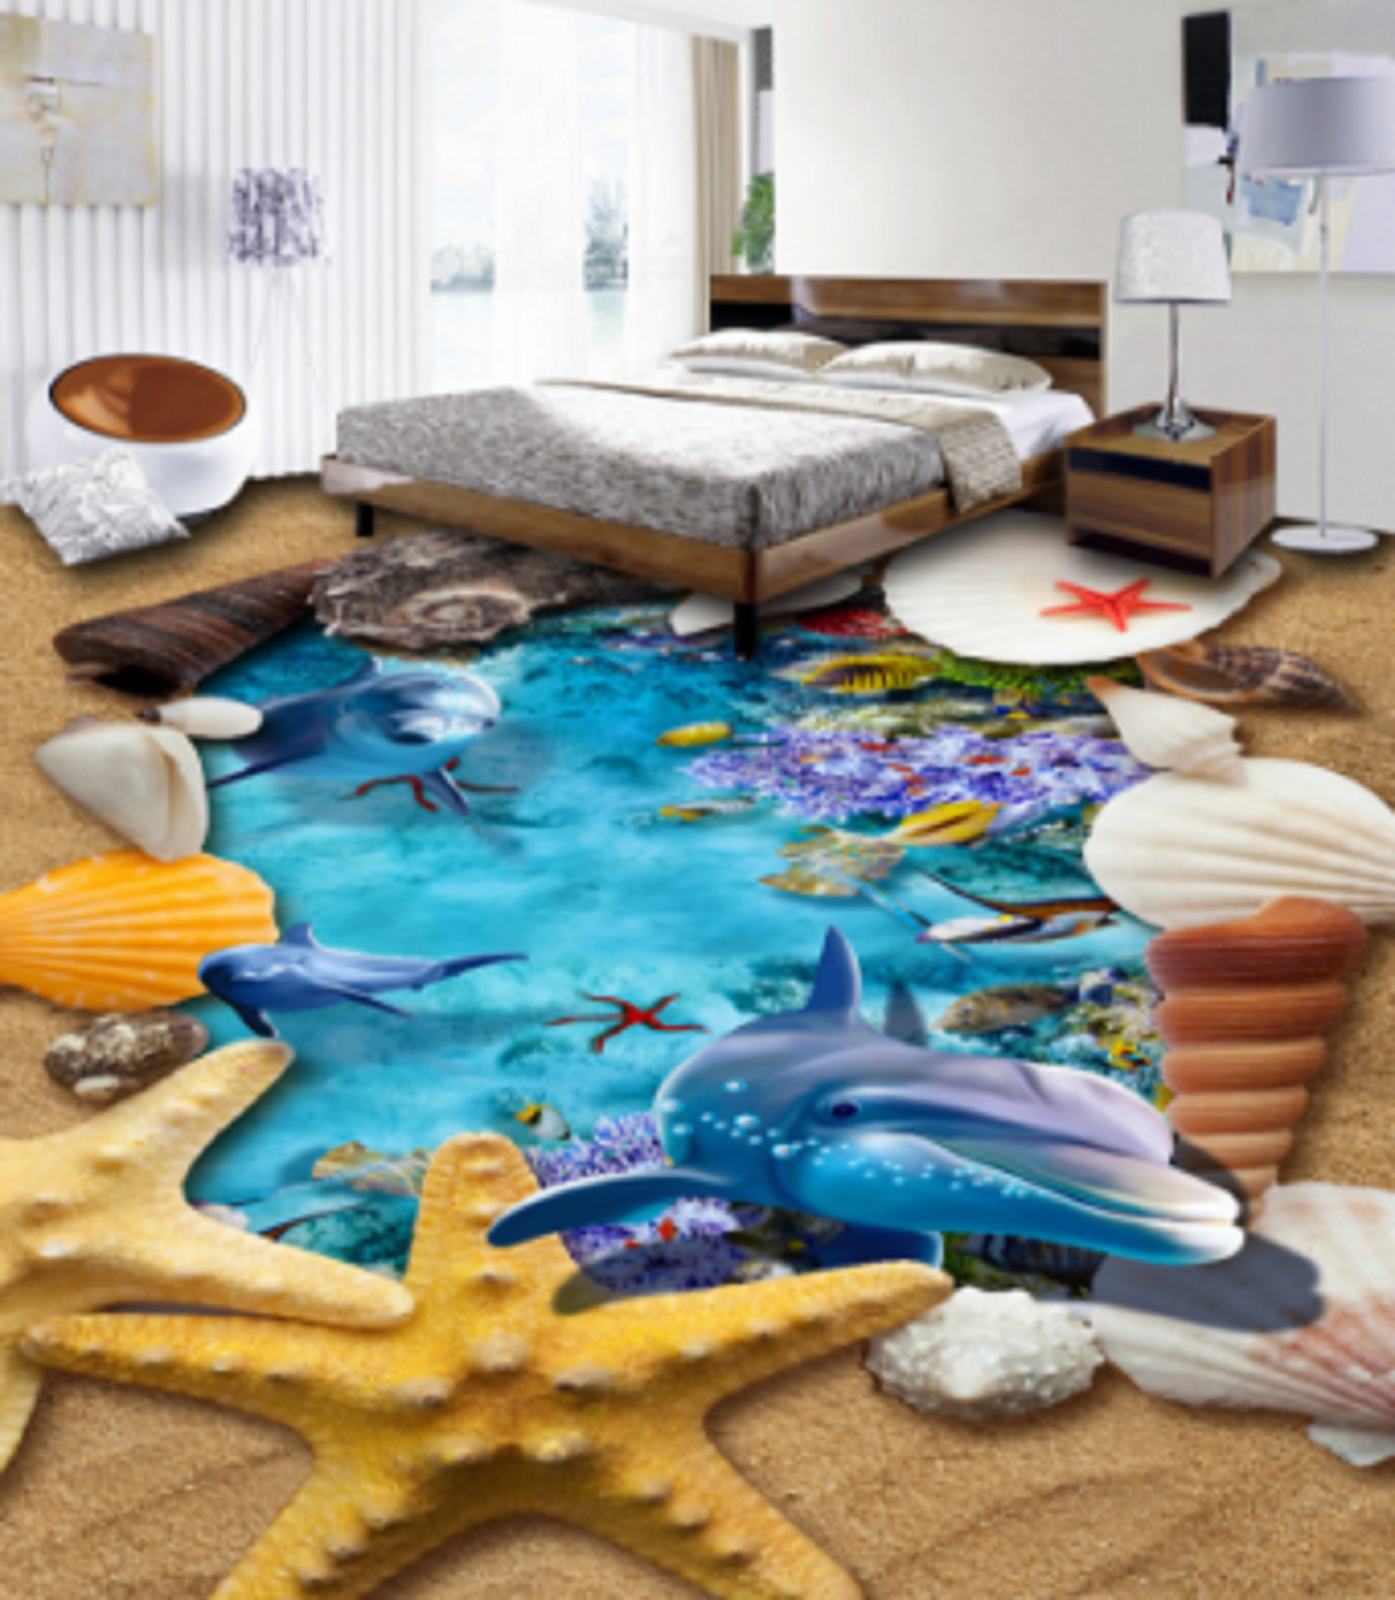 3D 3D 3D Starfish Dolphin 5 Floor WallPaper Murals Wall Print 5D AJ WALLPAPER UK Lemon 8556de